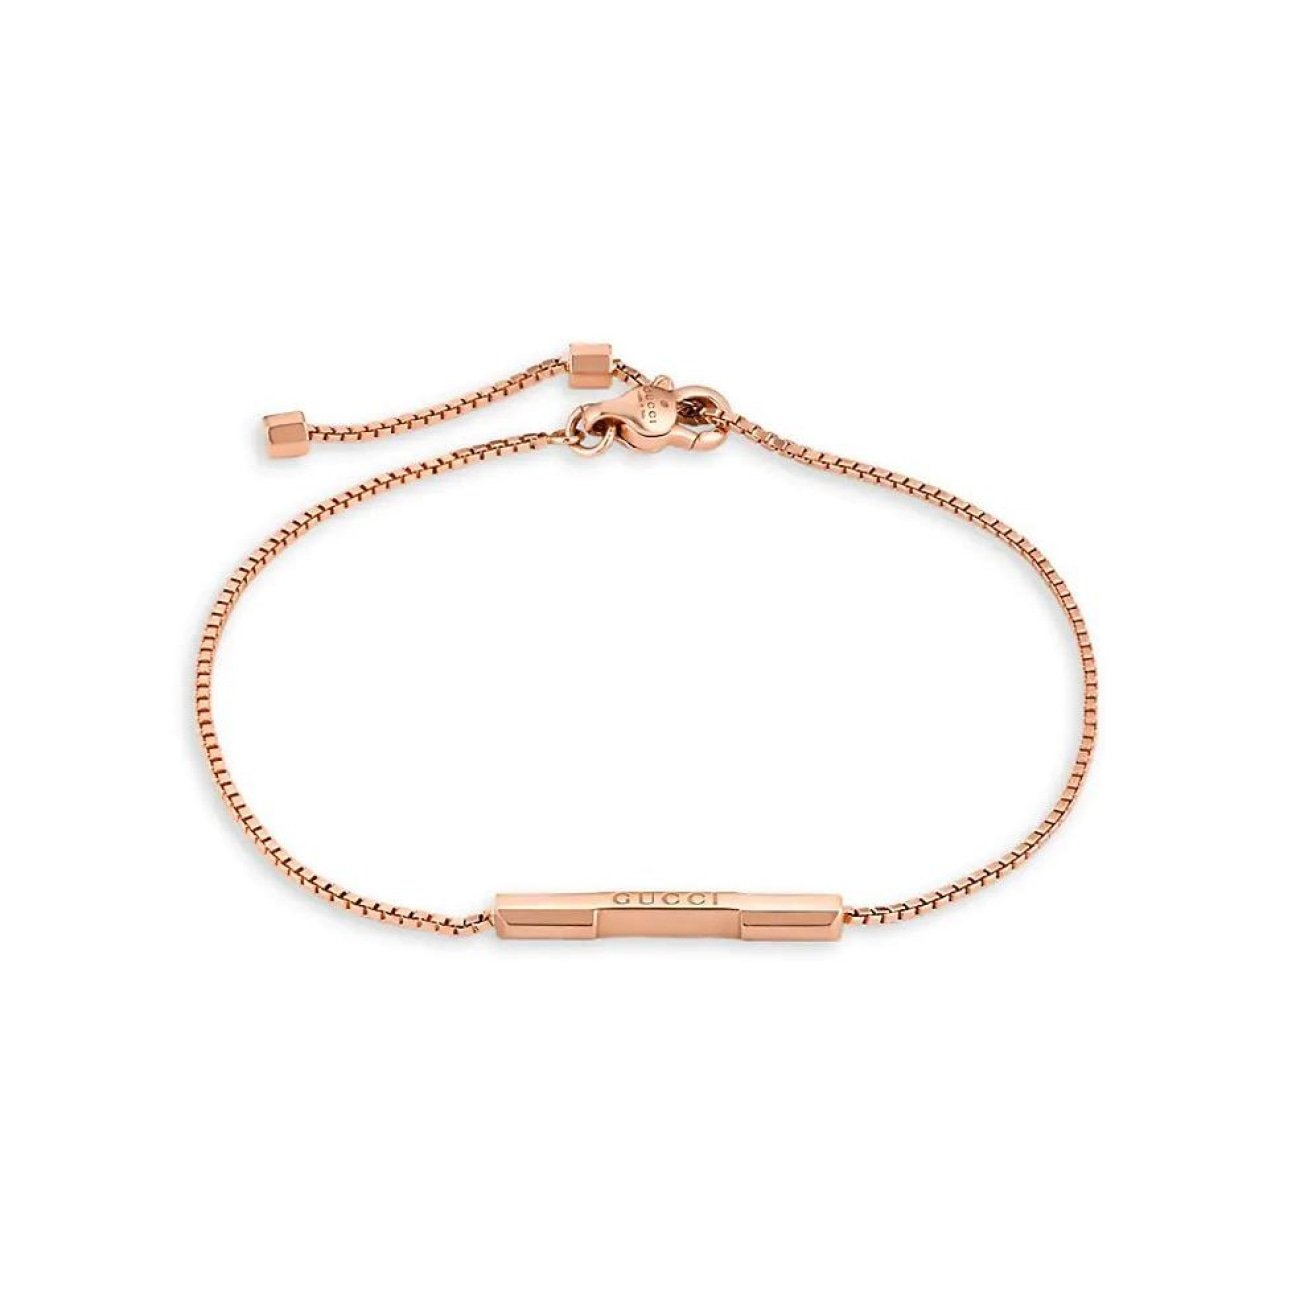 Our favorite jewelry pieces for the summer